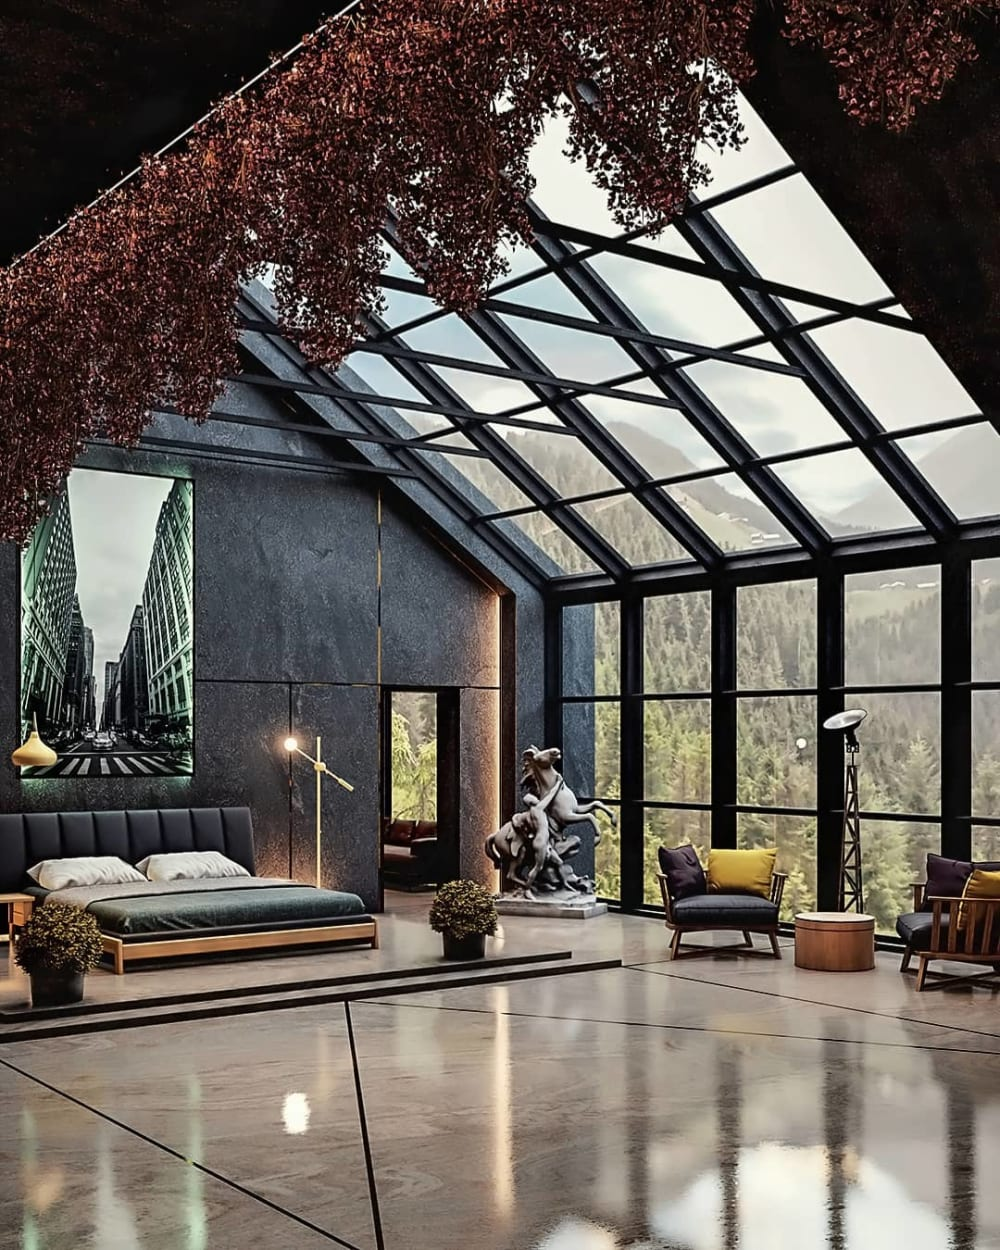 """Bedroom with hanging plants highlighting the vaulted ceiling.<span class=""""sr-only""""> (opened in a new window/tab)</span>"""